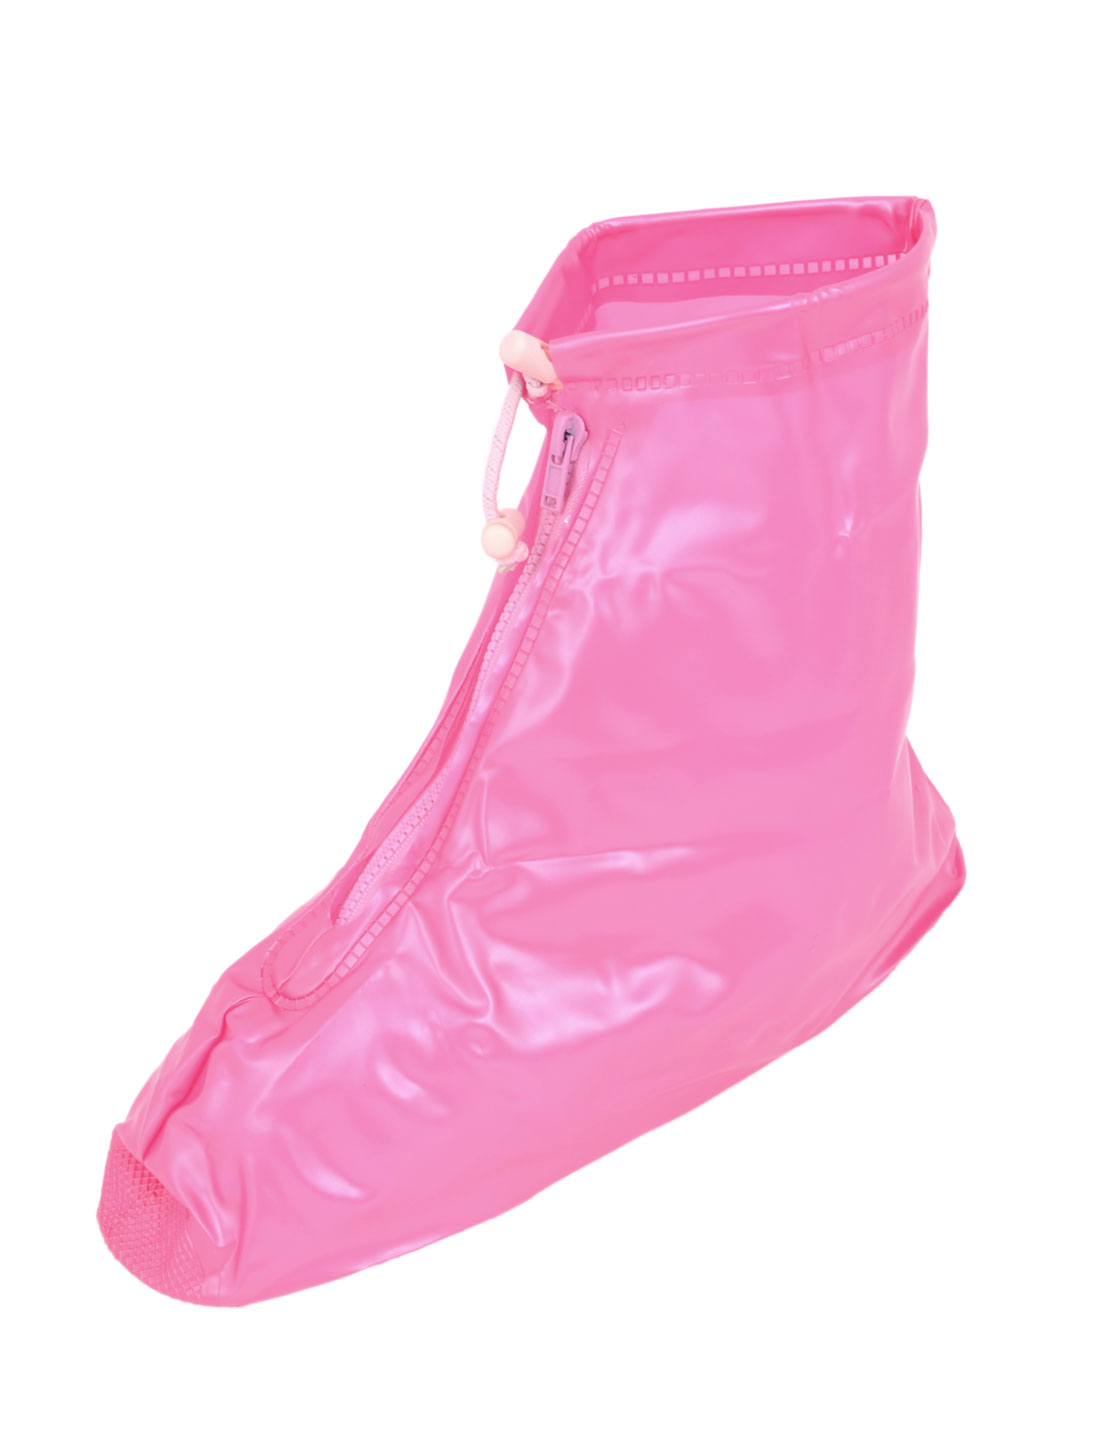 Lady Zip Up PVC Water Proof Shoes Cover Rain Boot Pink Pair US 9